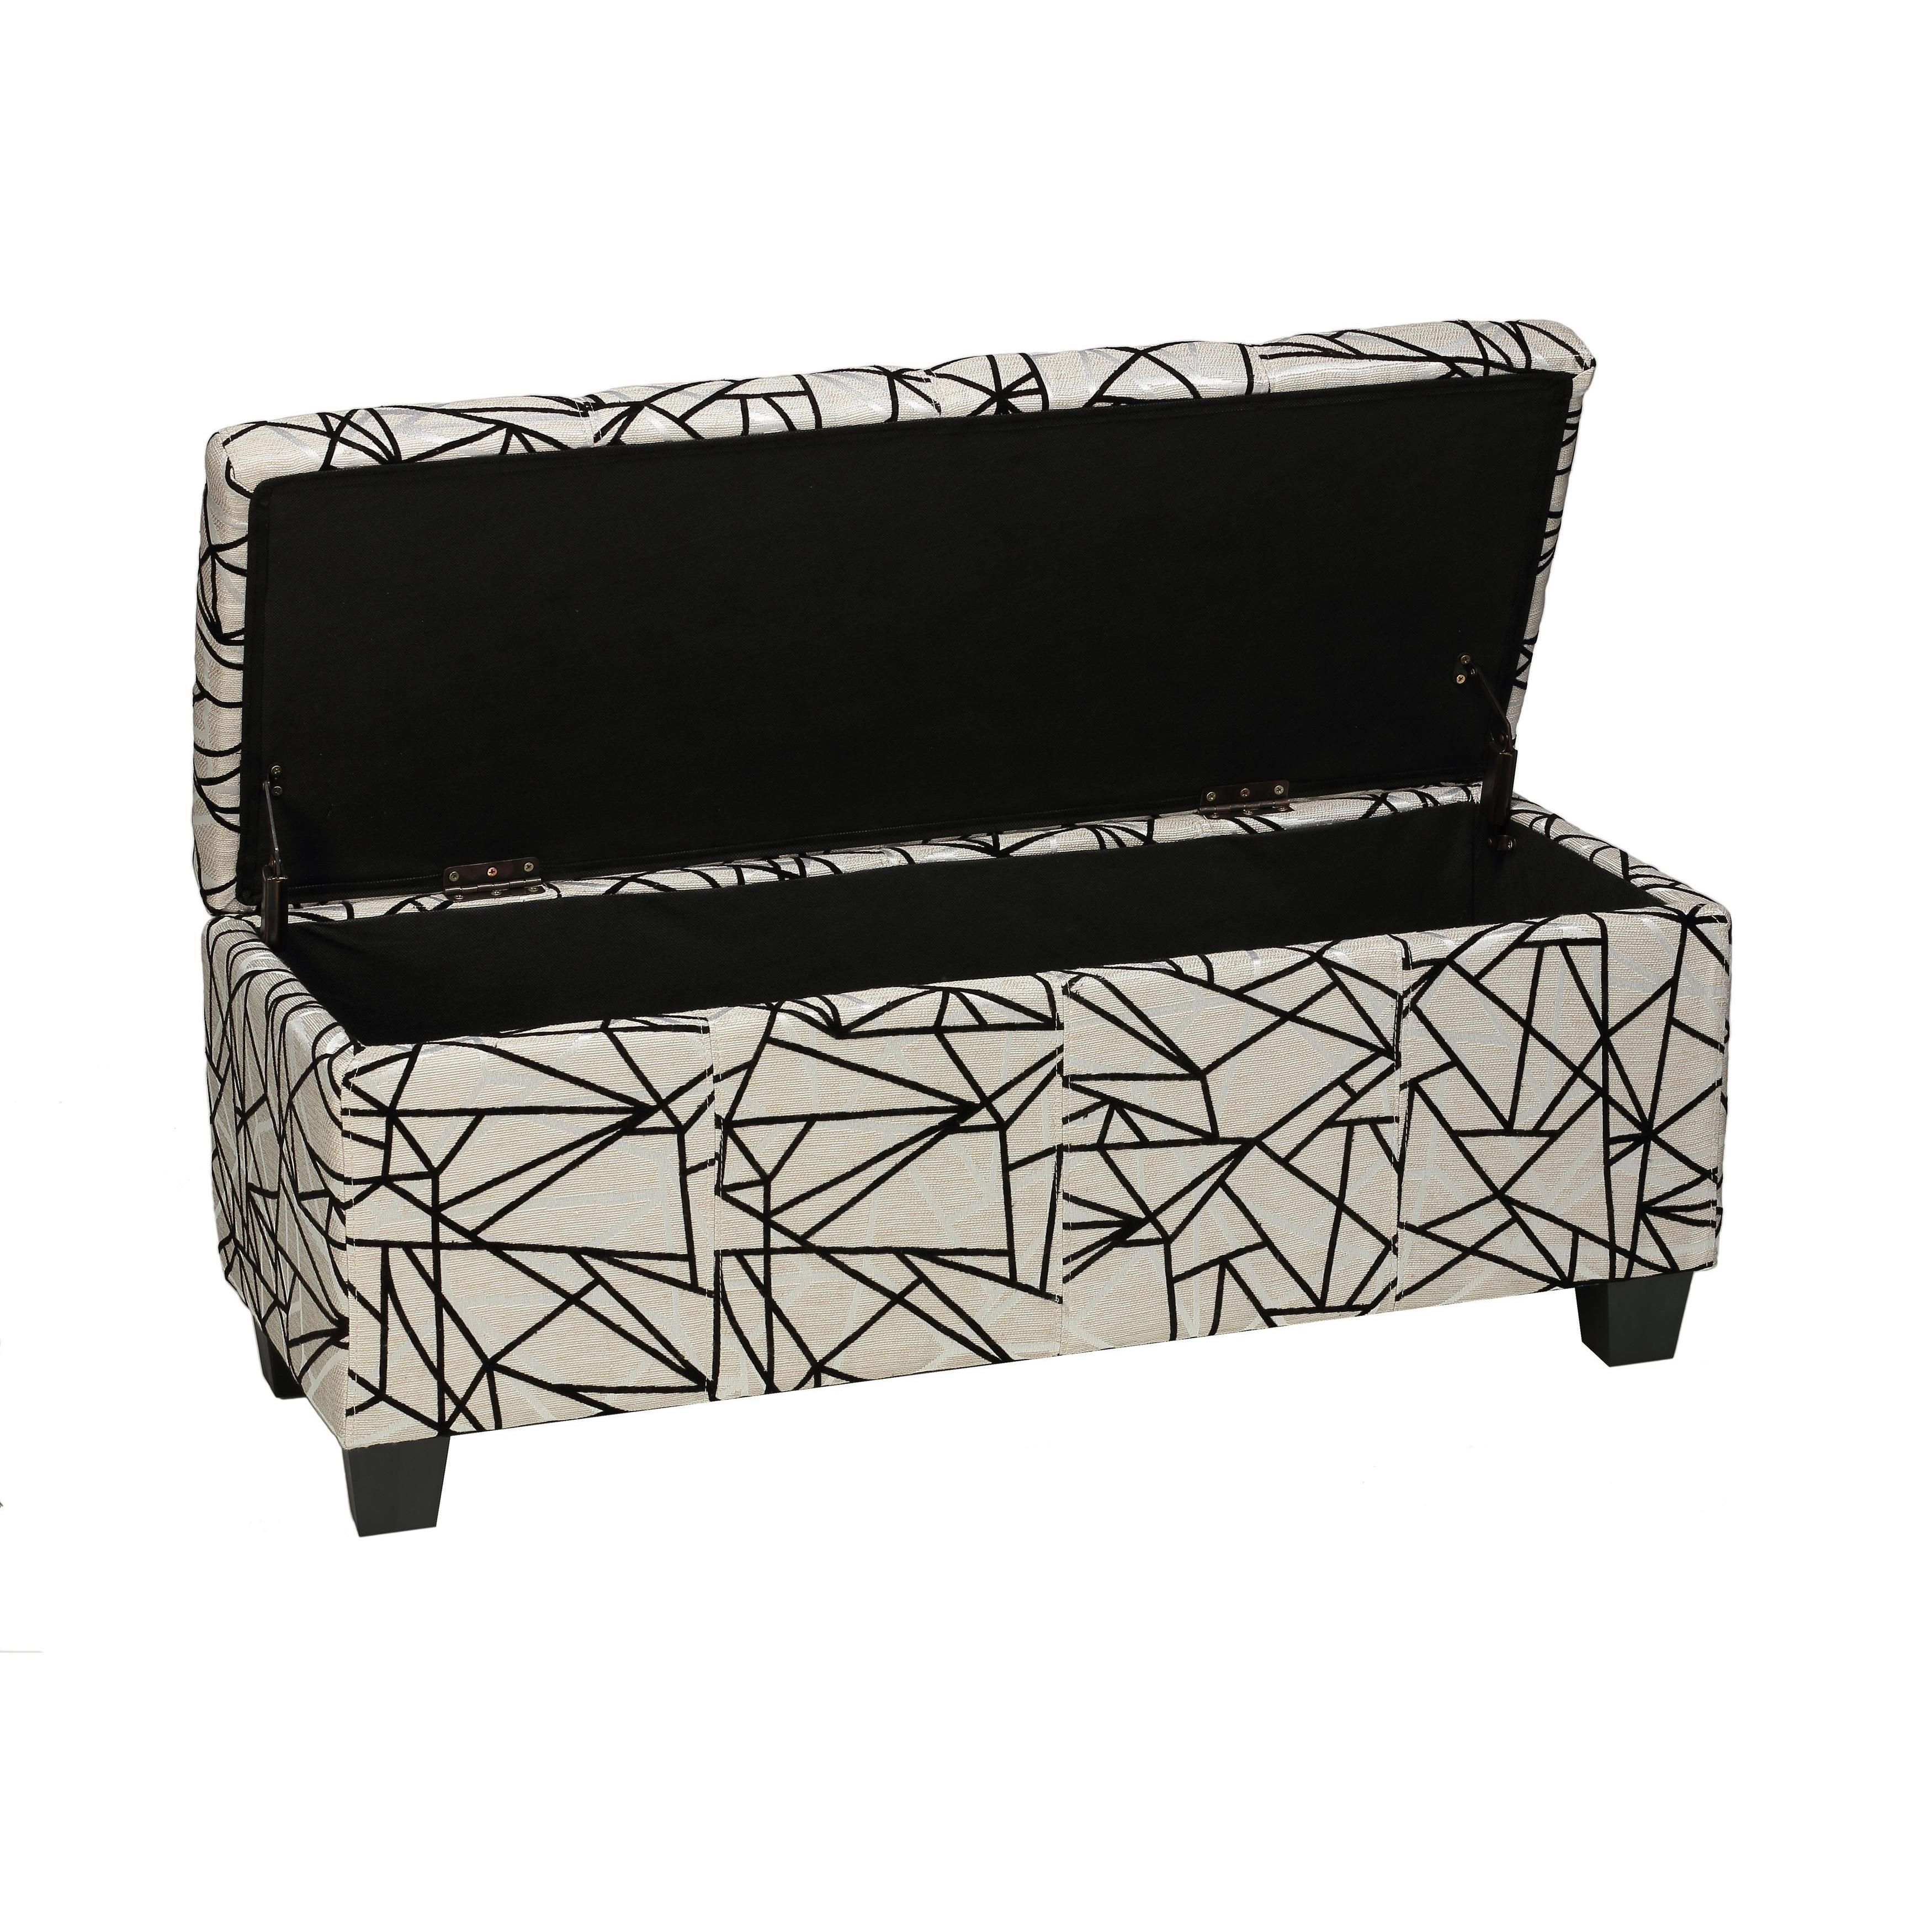 Superbe The Funky Zig Zag Storage Bench Is Covered In A Soft Linen Like Fabric And  Offers A Solid Wood Construction. Overall Beige In Color, It Has Embossed  Black ...